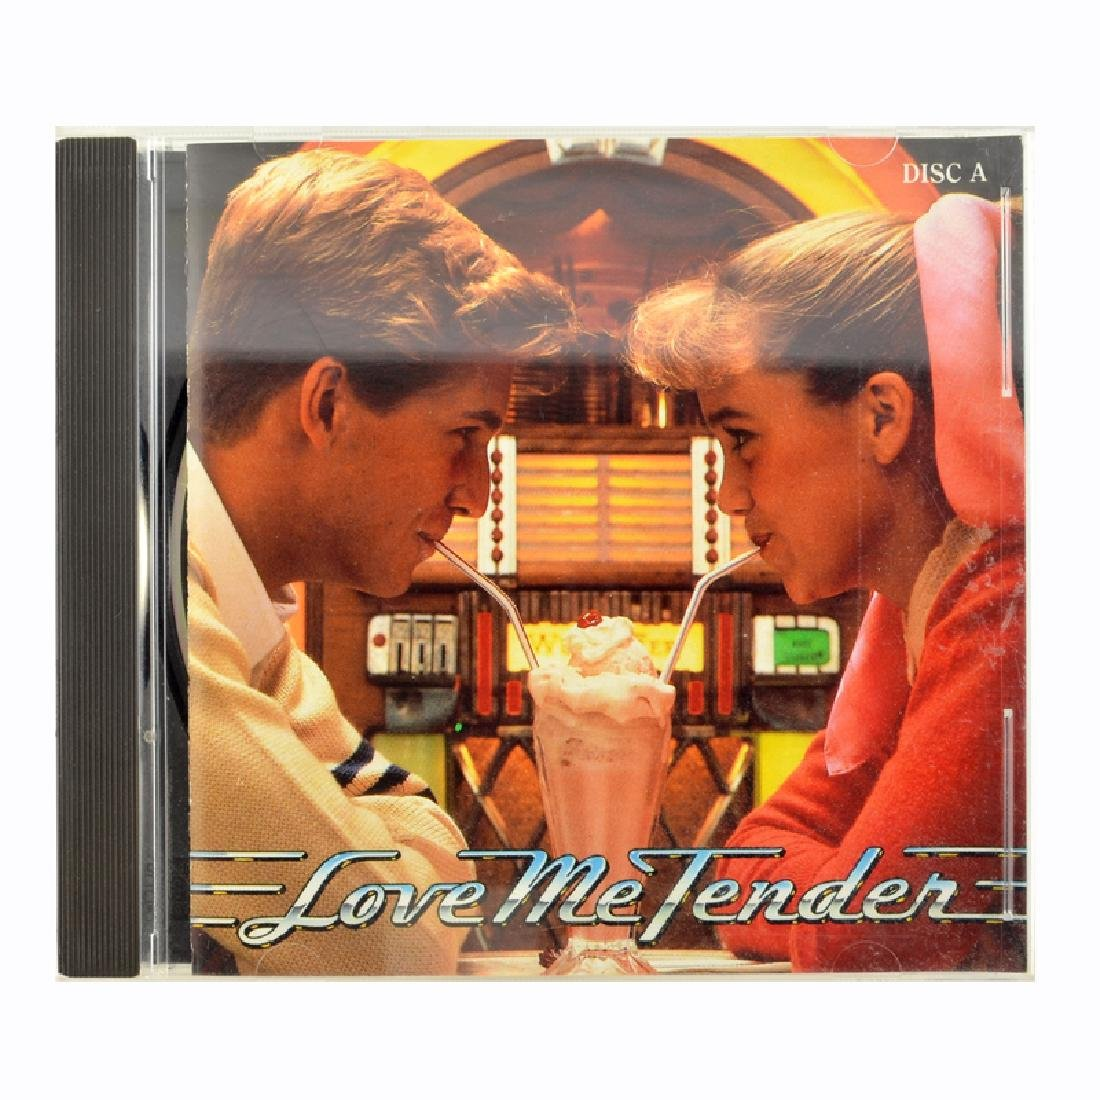 Love Me Tender CDs